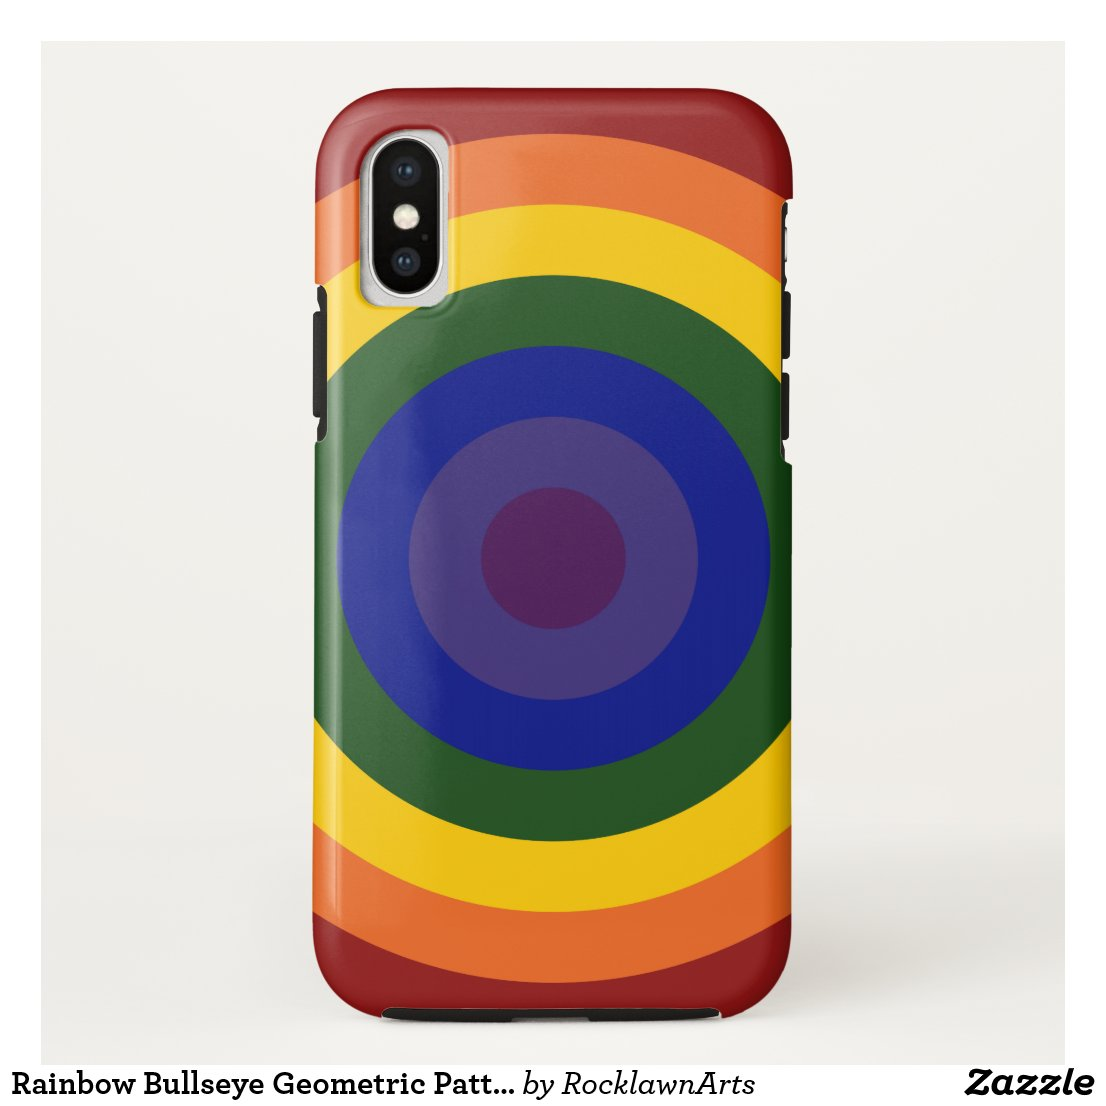 Rainbow Bullseye Geometric Pattern iPhone Case